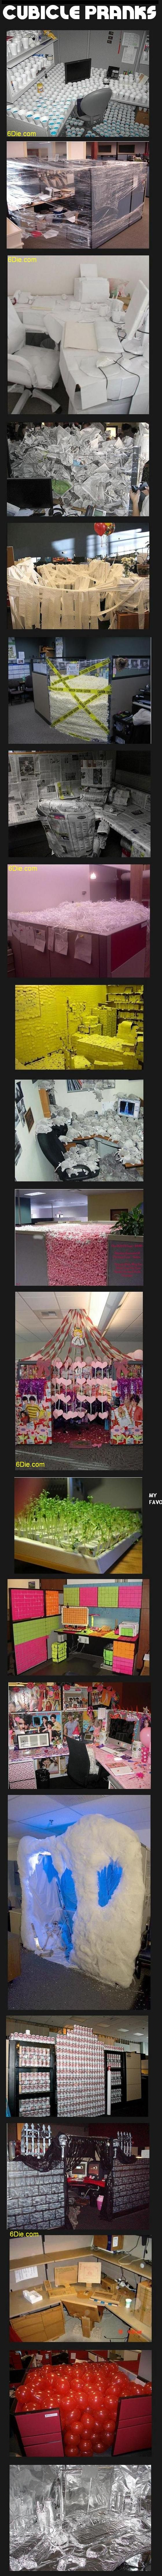 If I had a cubicle and somebody kindly decorated it with Jonas Brothers galore, I'd be extremely grateful. 20 best cubicle pranks.